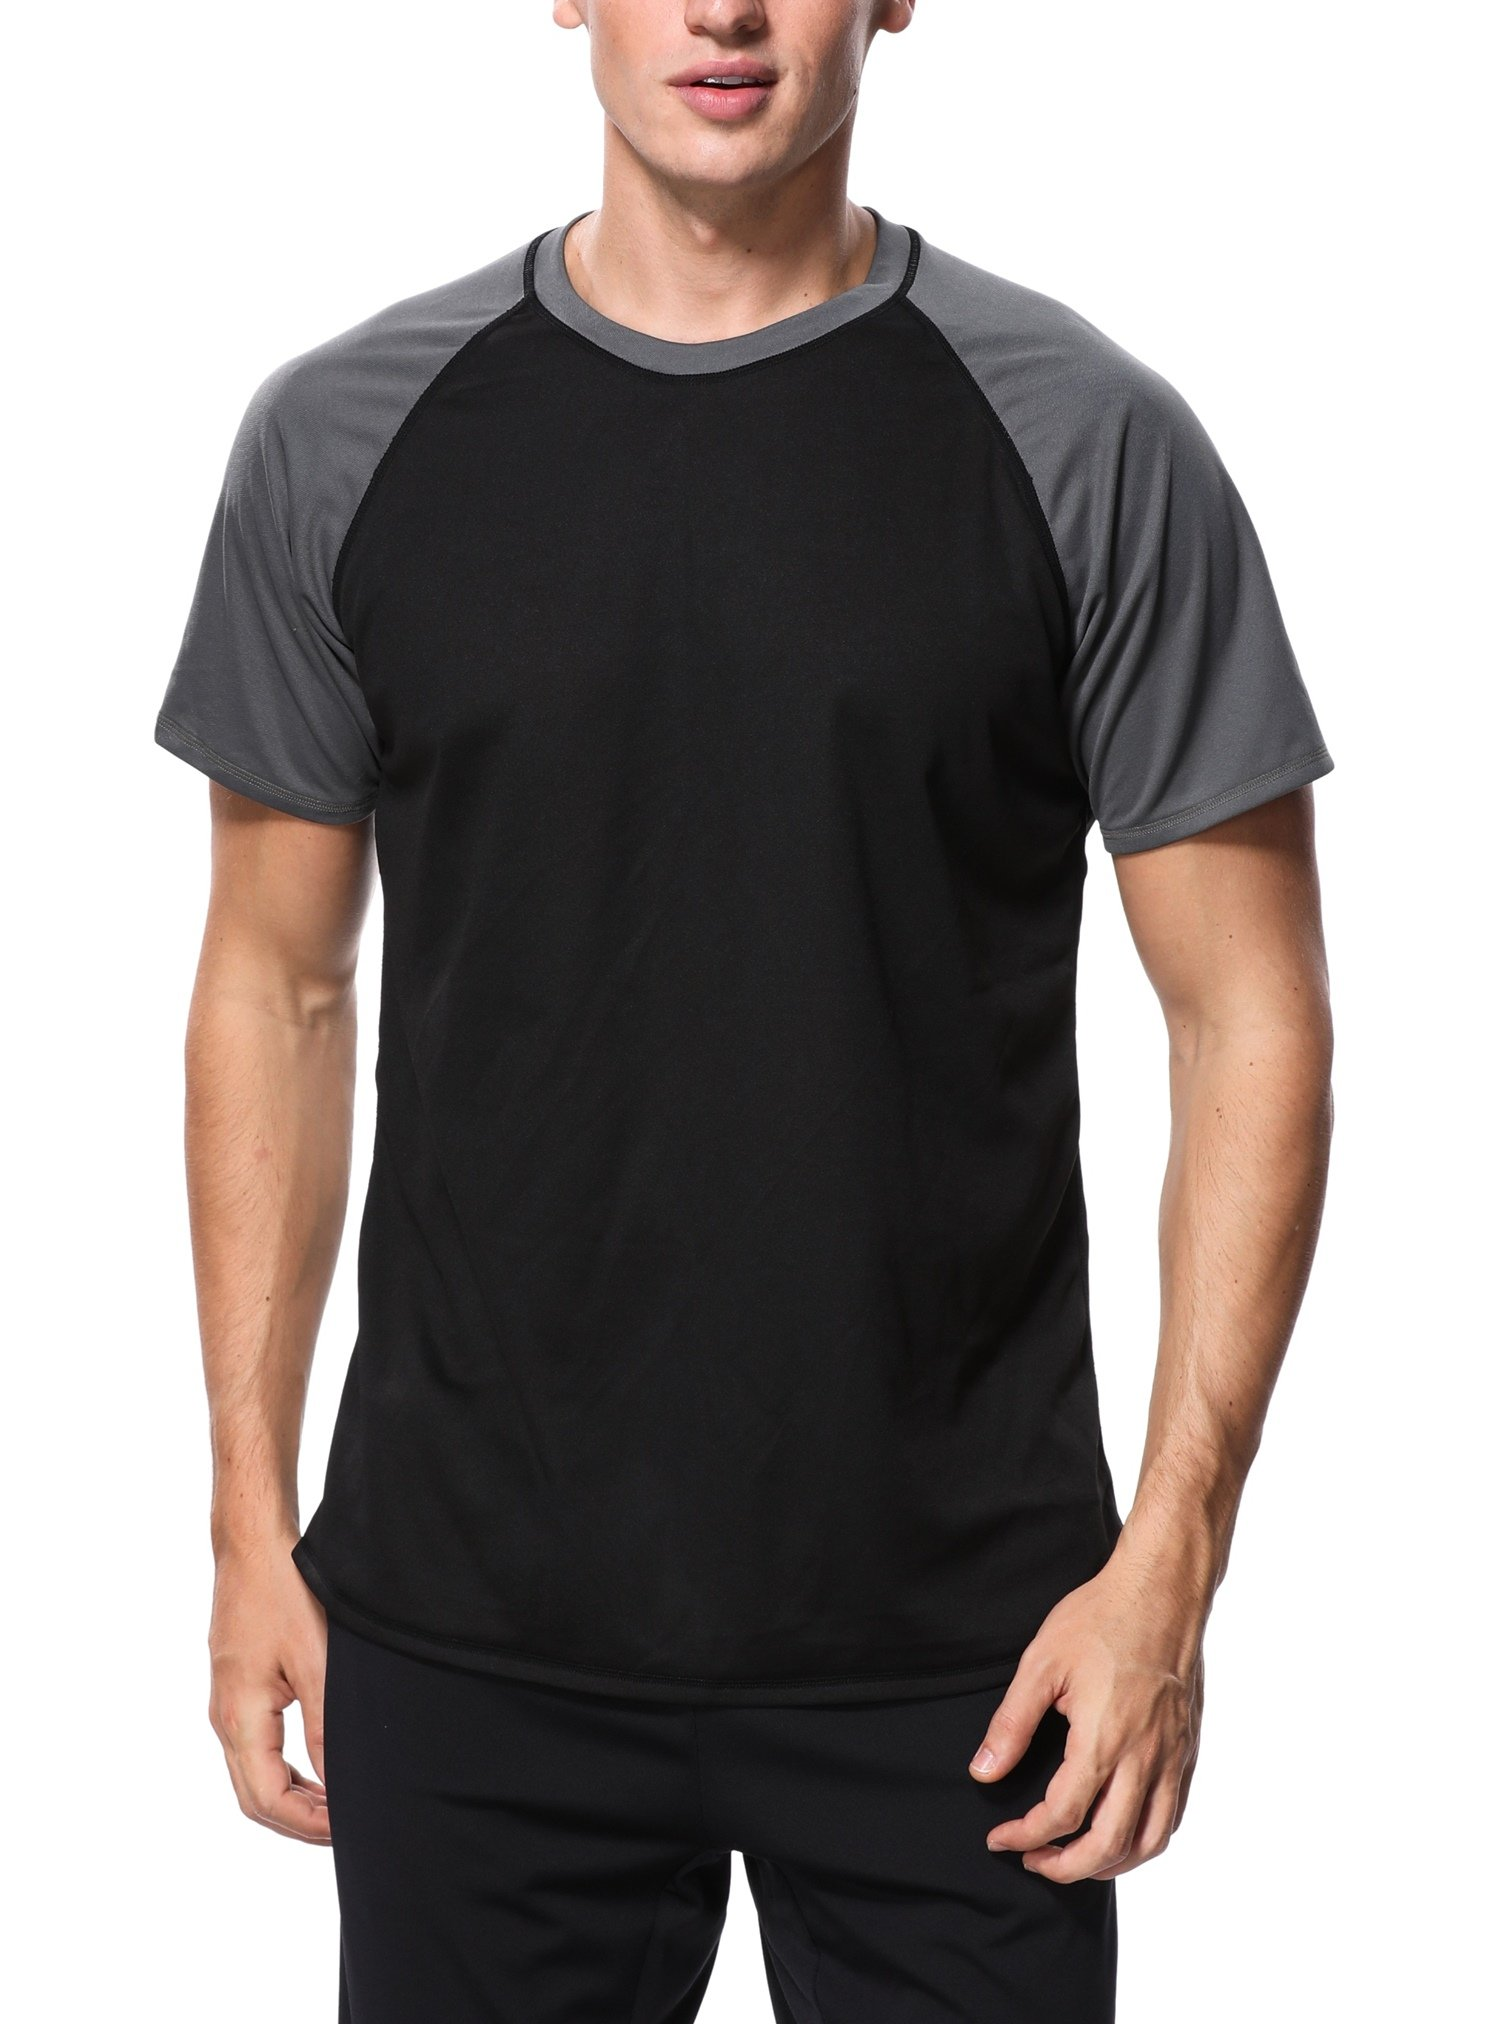 ATTRACO Men's Rashguard Shirt Quick Dry Short Sleeve Swim Tee Black Large